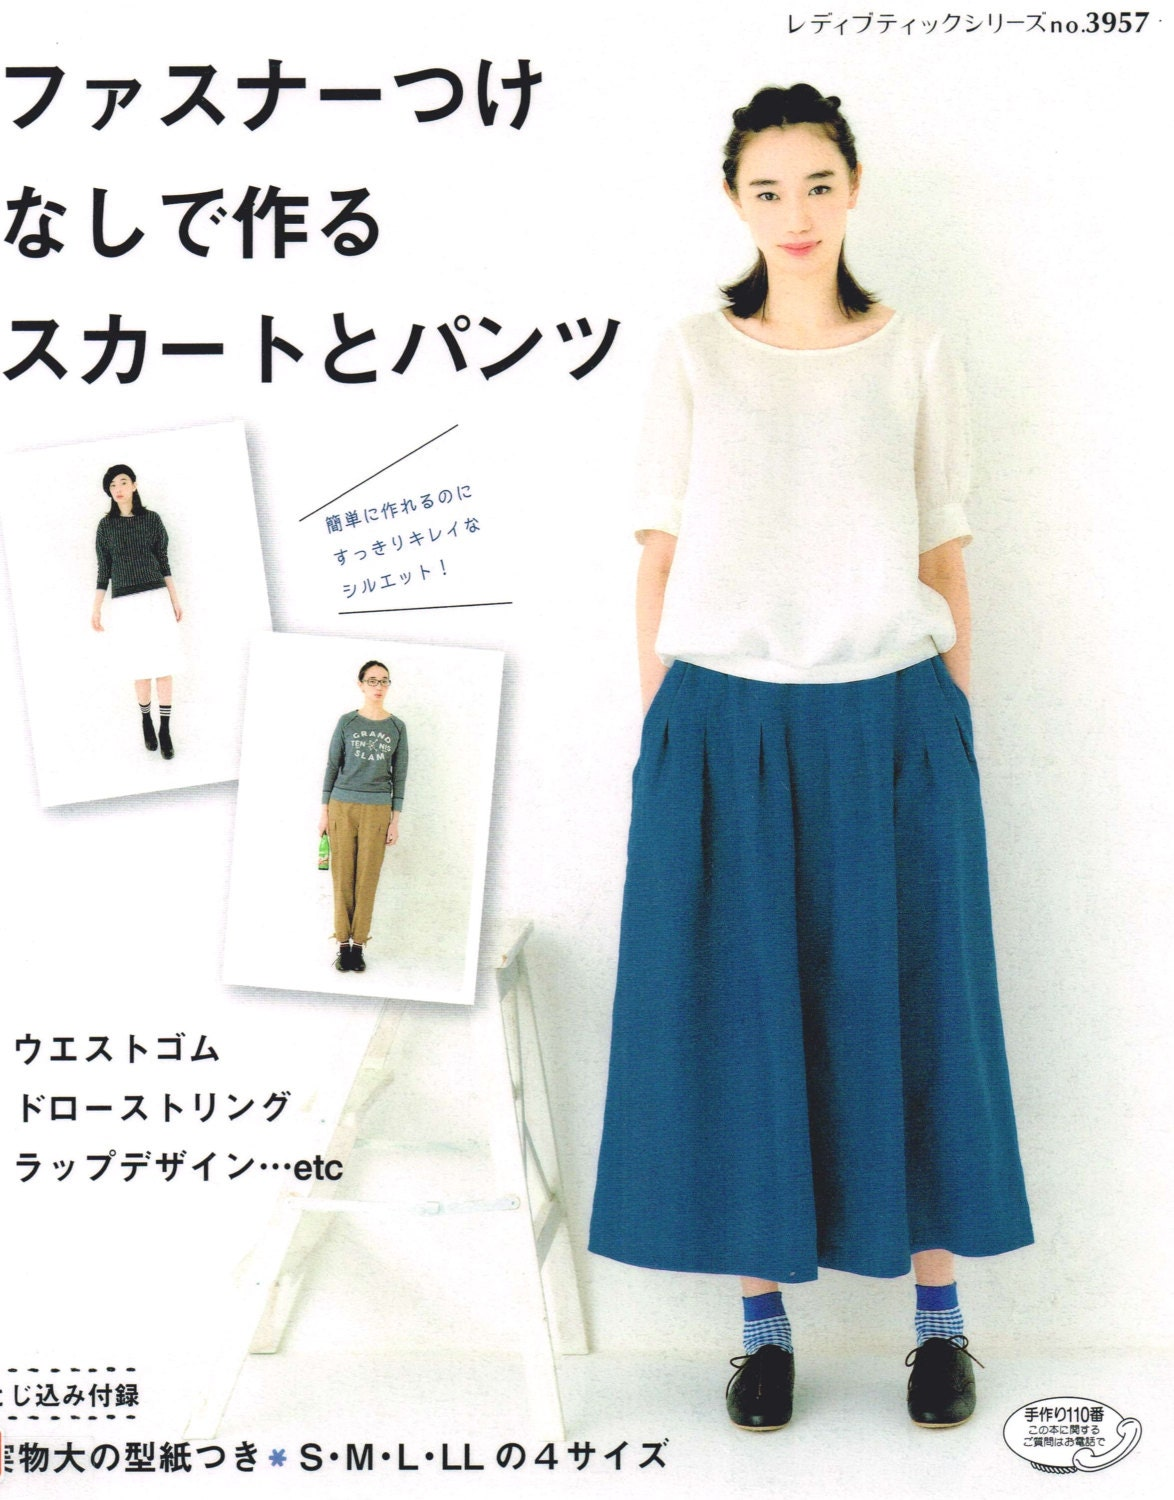 Easy skirt pants patterns japanese sewing pattern book for easy skirt pants patterns japanese sewing pattern book for women casual clothing lady boutique series easy sewing tutorial b1603 from jeuxipadfo Image collections